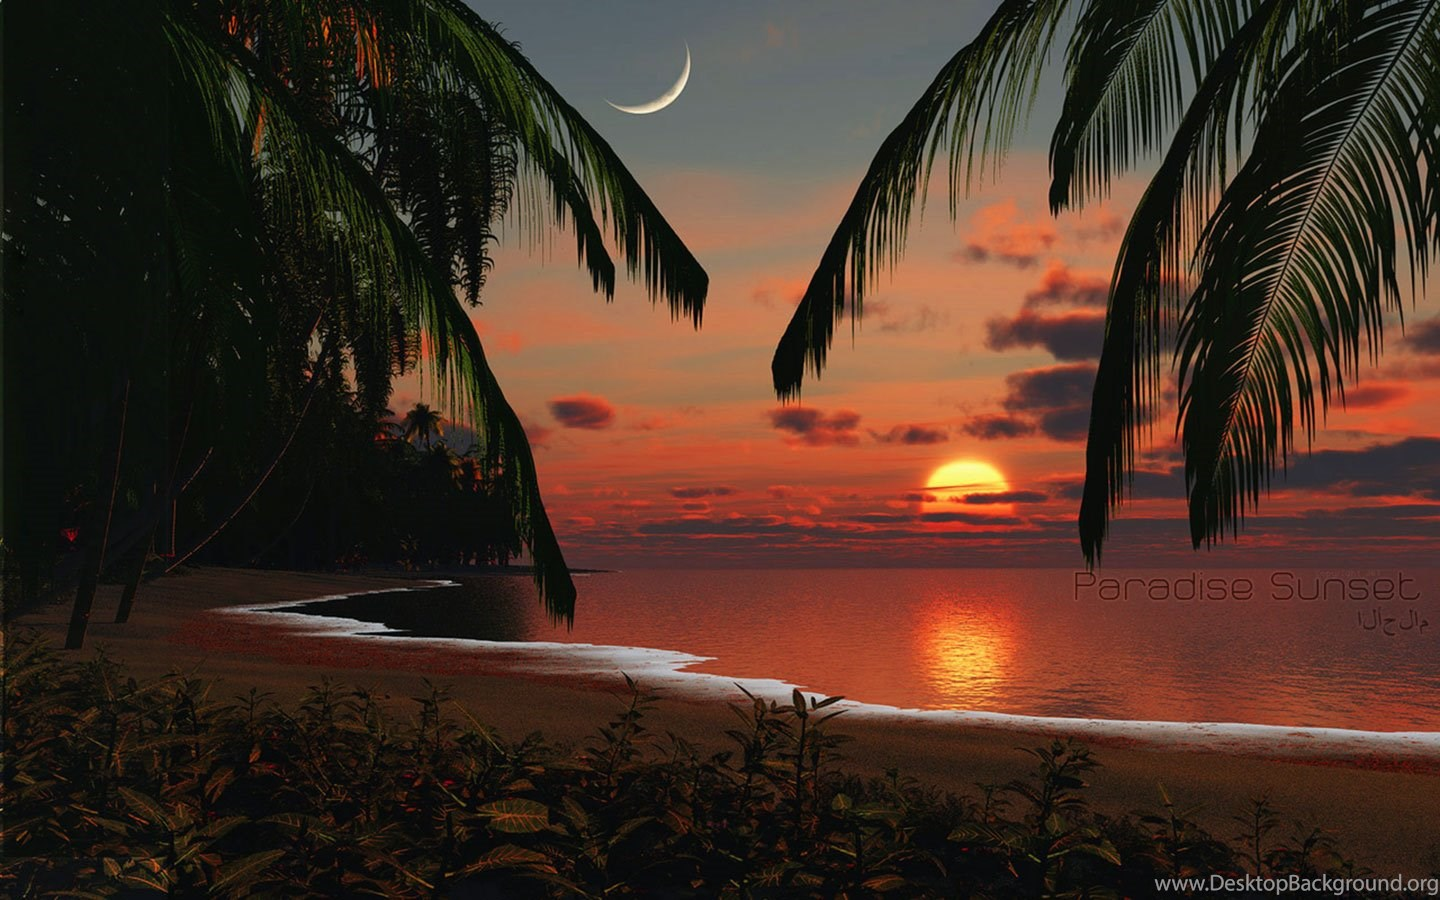 Tropical Island Sunset Wallpaper Desktop Background